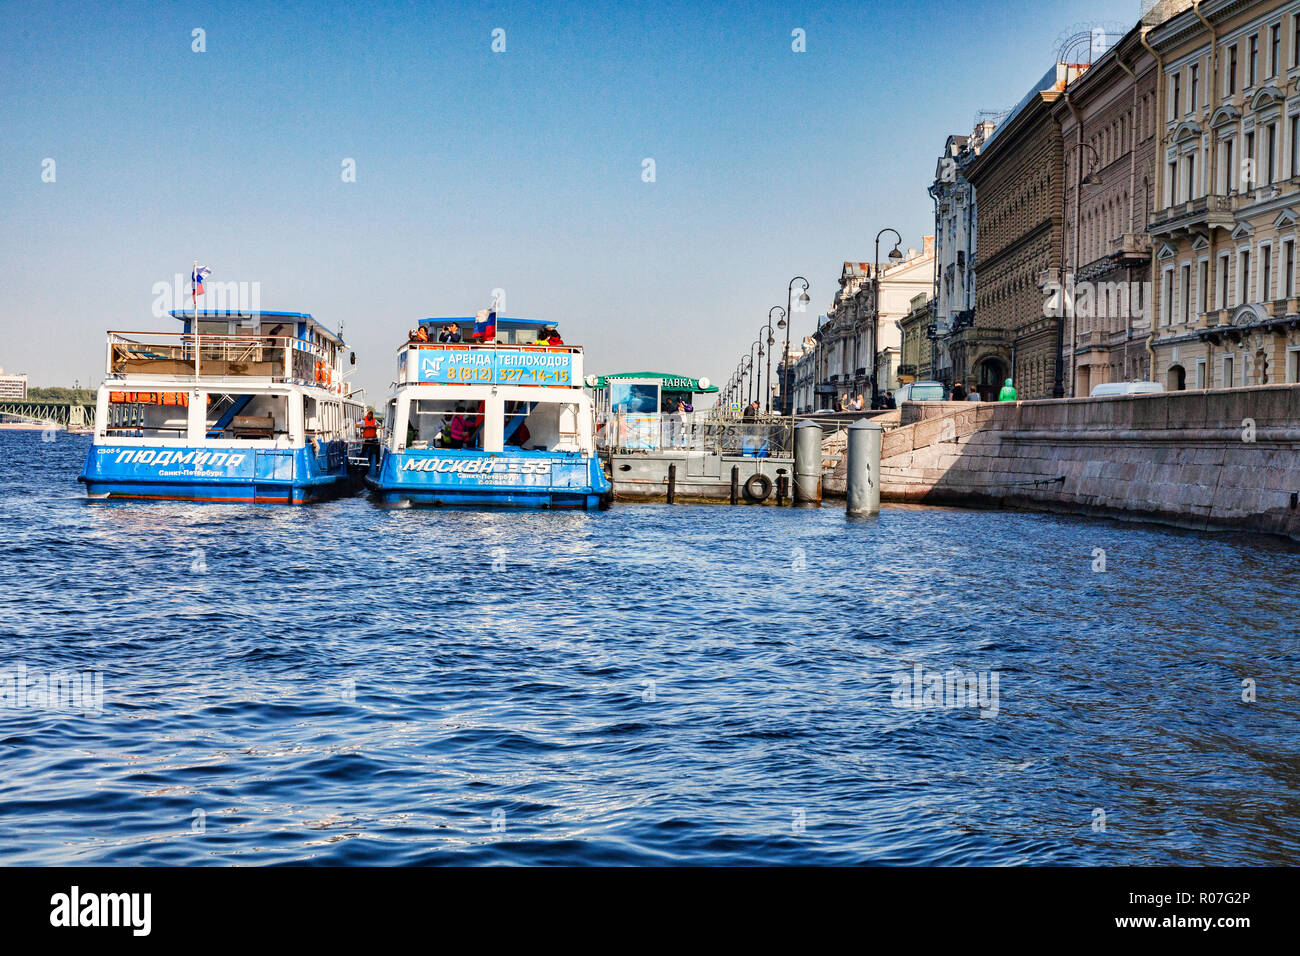 19 September 2018: St Petersburg, Russia - Tour boats in the River Neva, on a bright autumn day with clear blue sky. - Stock Image